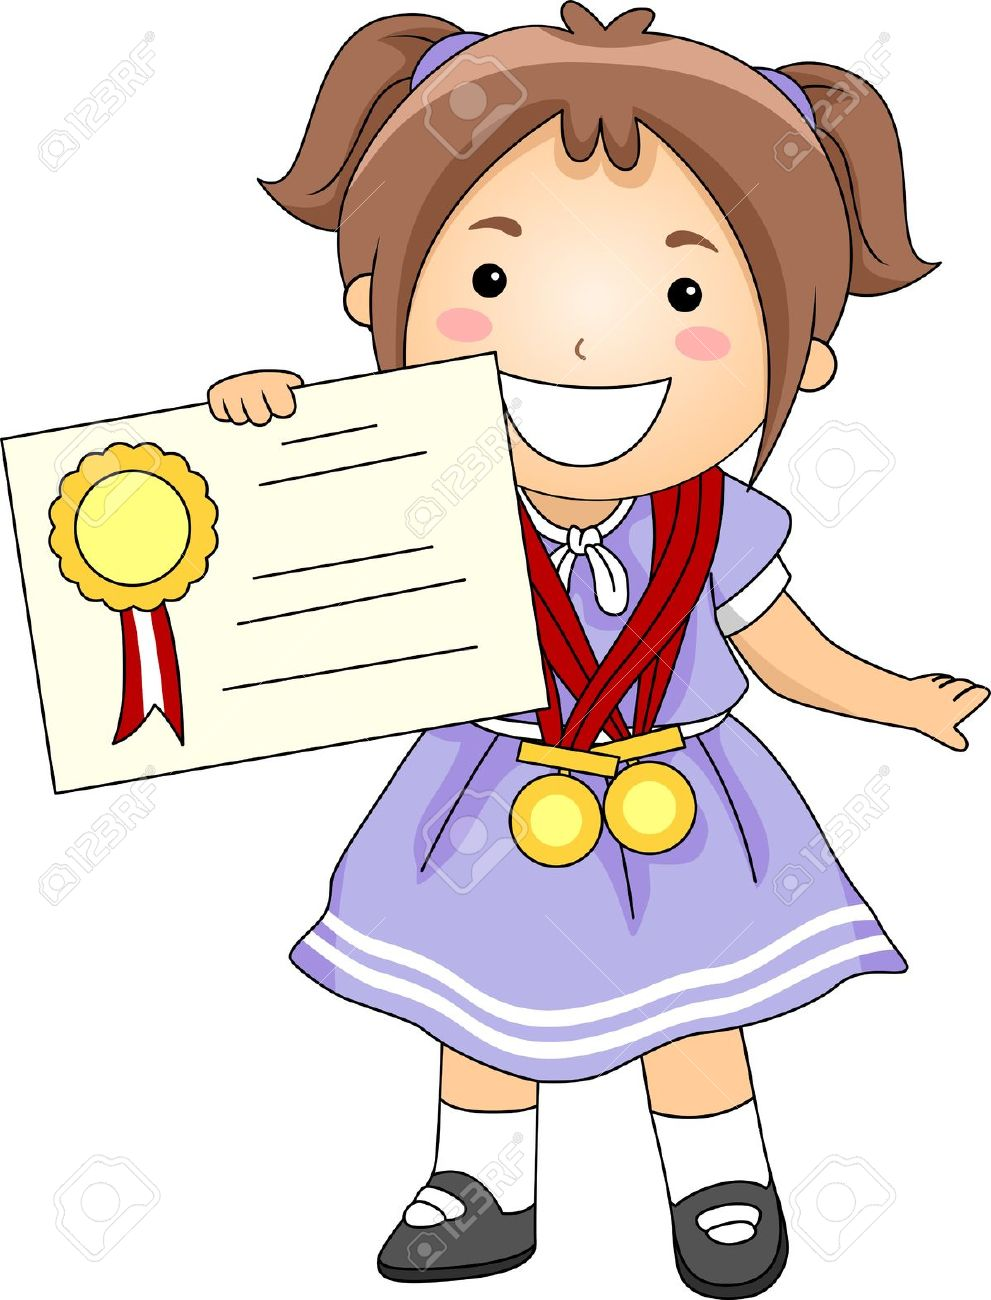 collection of school. Award clipart illustration